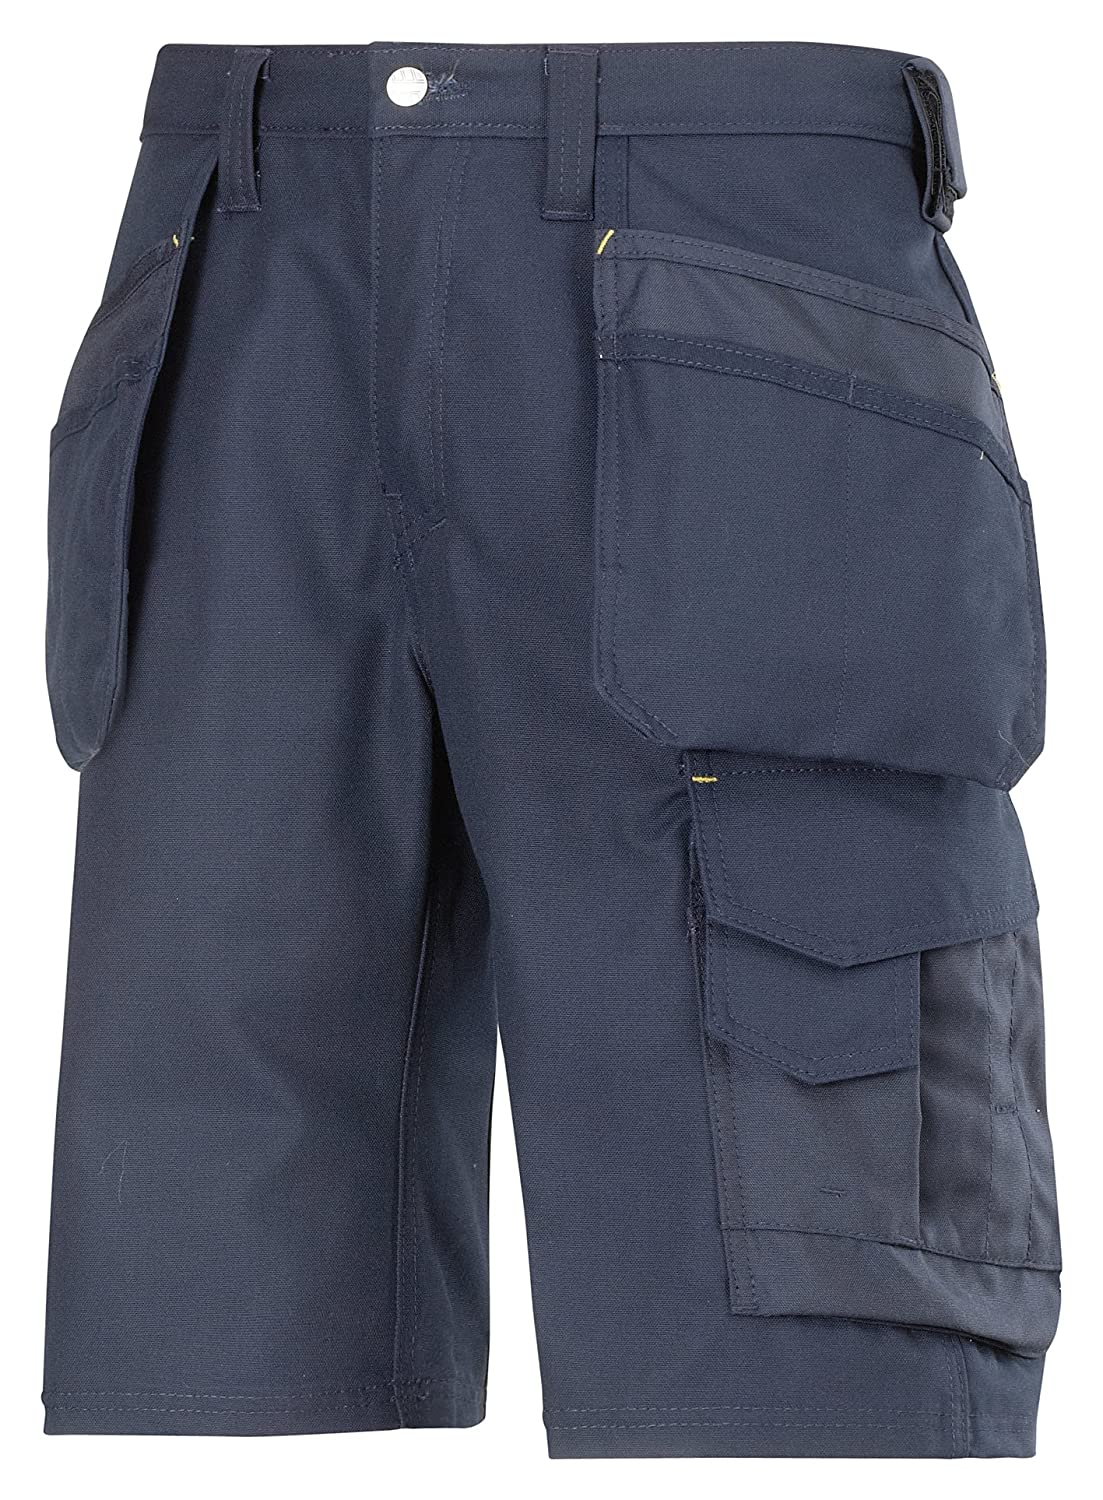 Snickers Canvas+ Shorts navy Gr. 46